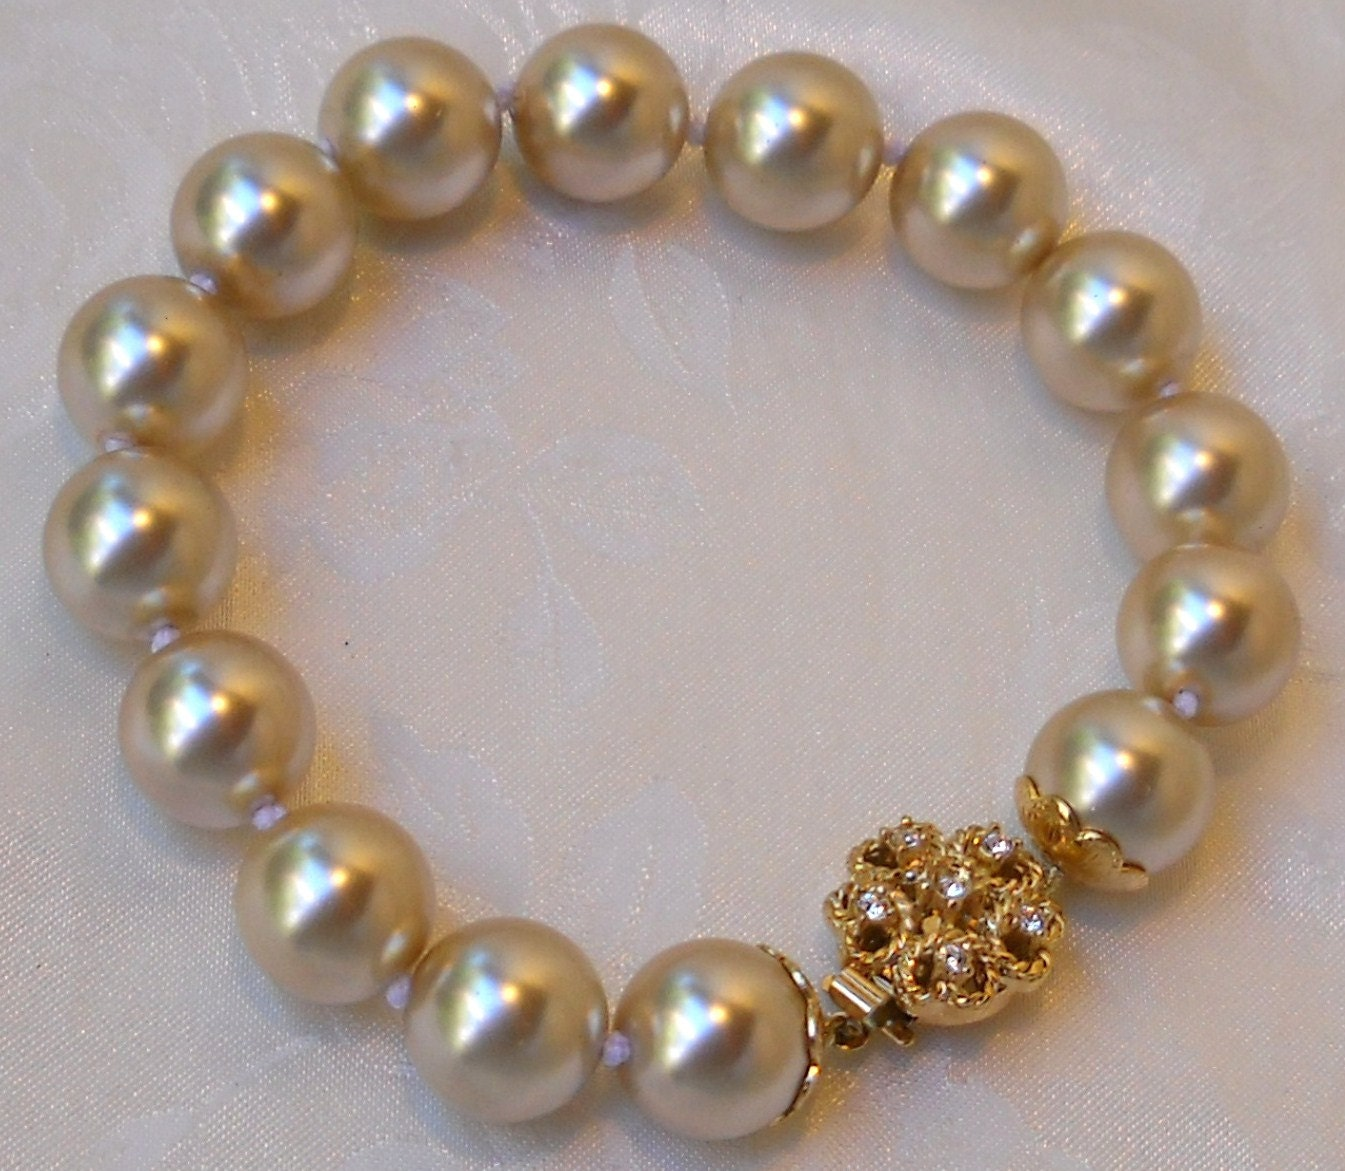 Mallorca Pearl Necklace: Majorca/Mallorca Pearl Bracelet Single Strand 7.5 12mm